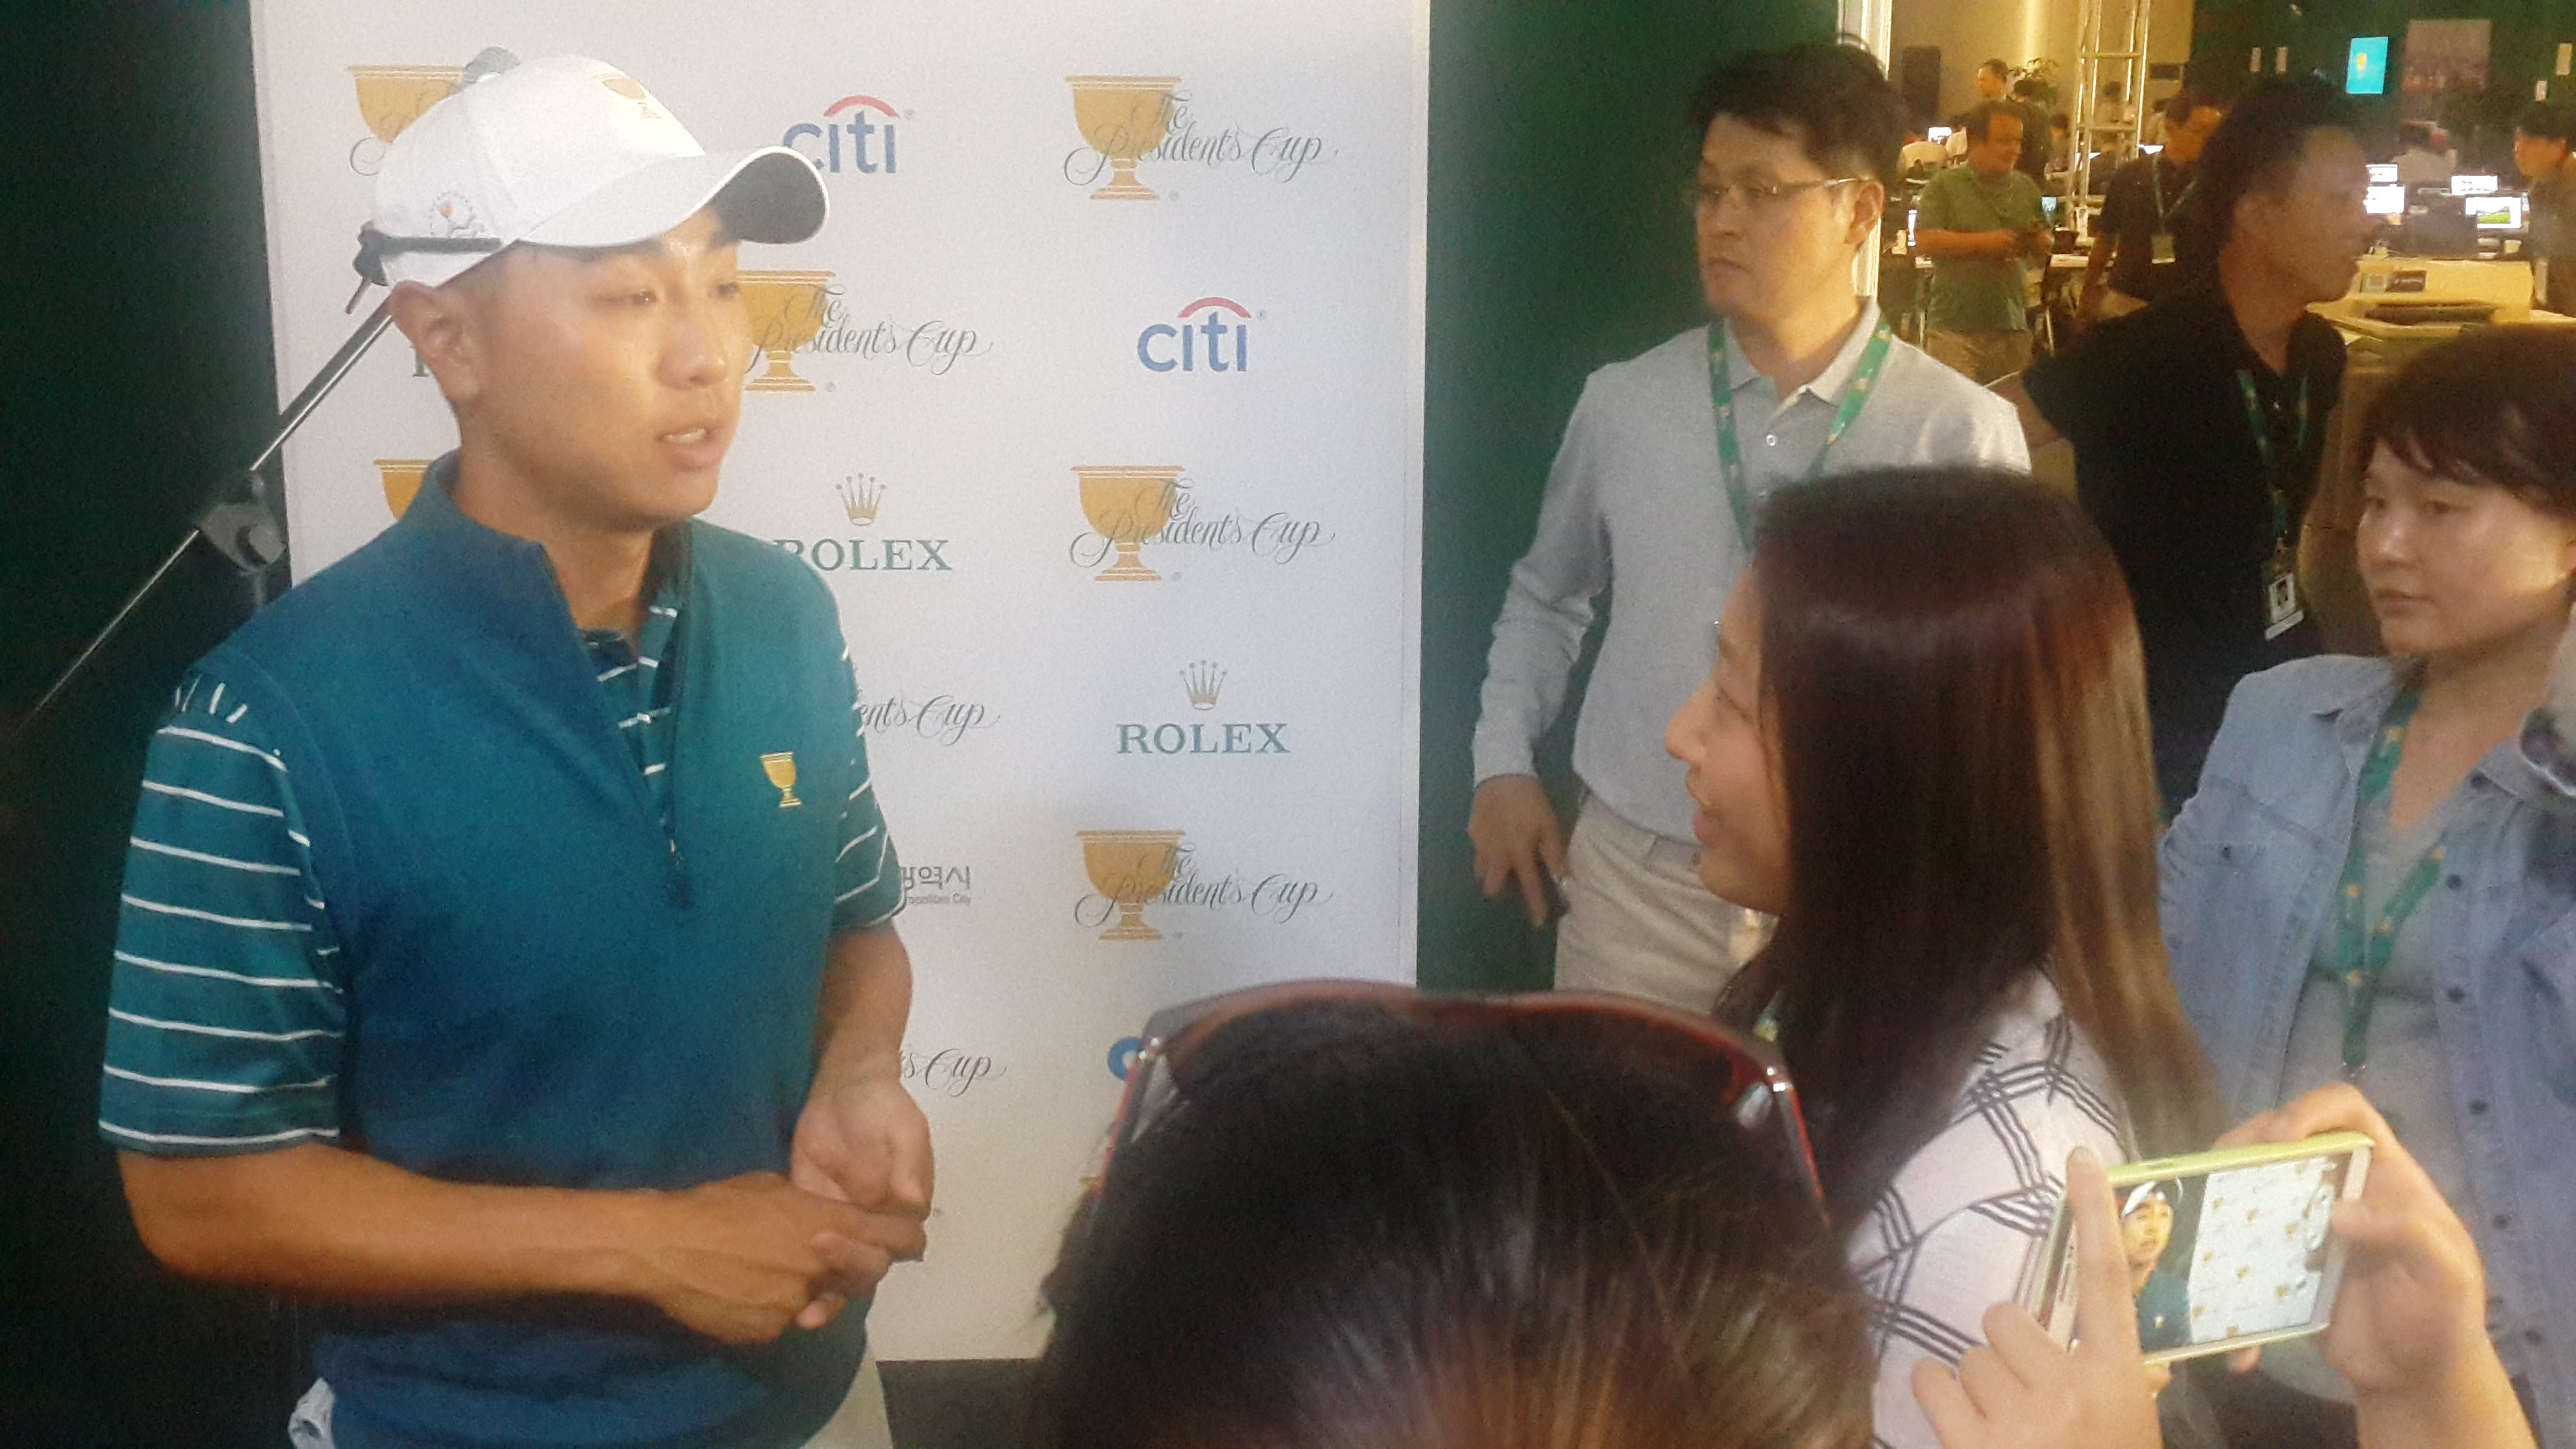 Sarah Choi, Center Right, Interviews Korean Golfer Sangmoon Bae At The Presidents Cup Press Conference On Oct. 6, 2015 In Songdo, South Korea. Photo Credit: Cijournalism.org.